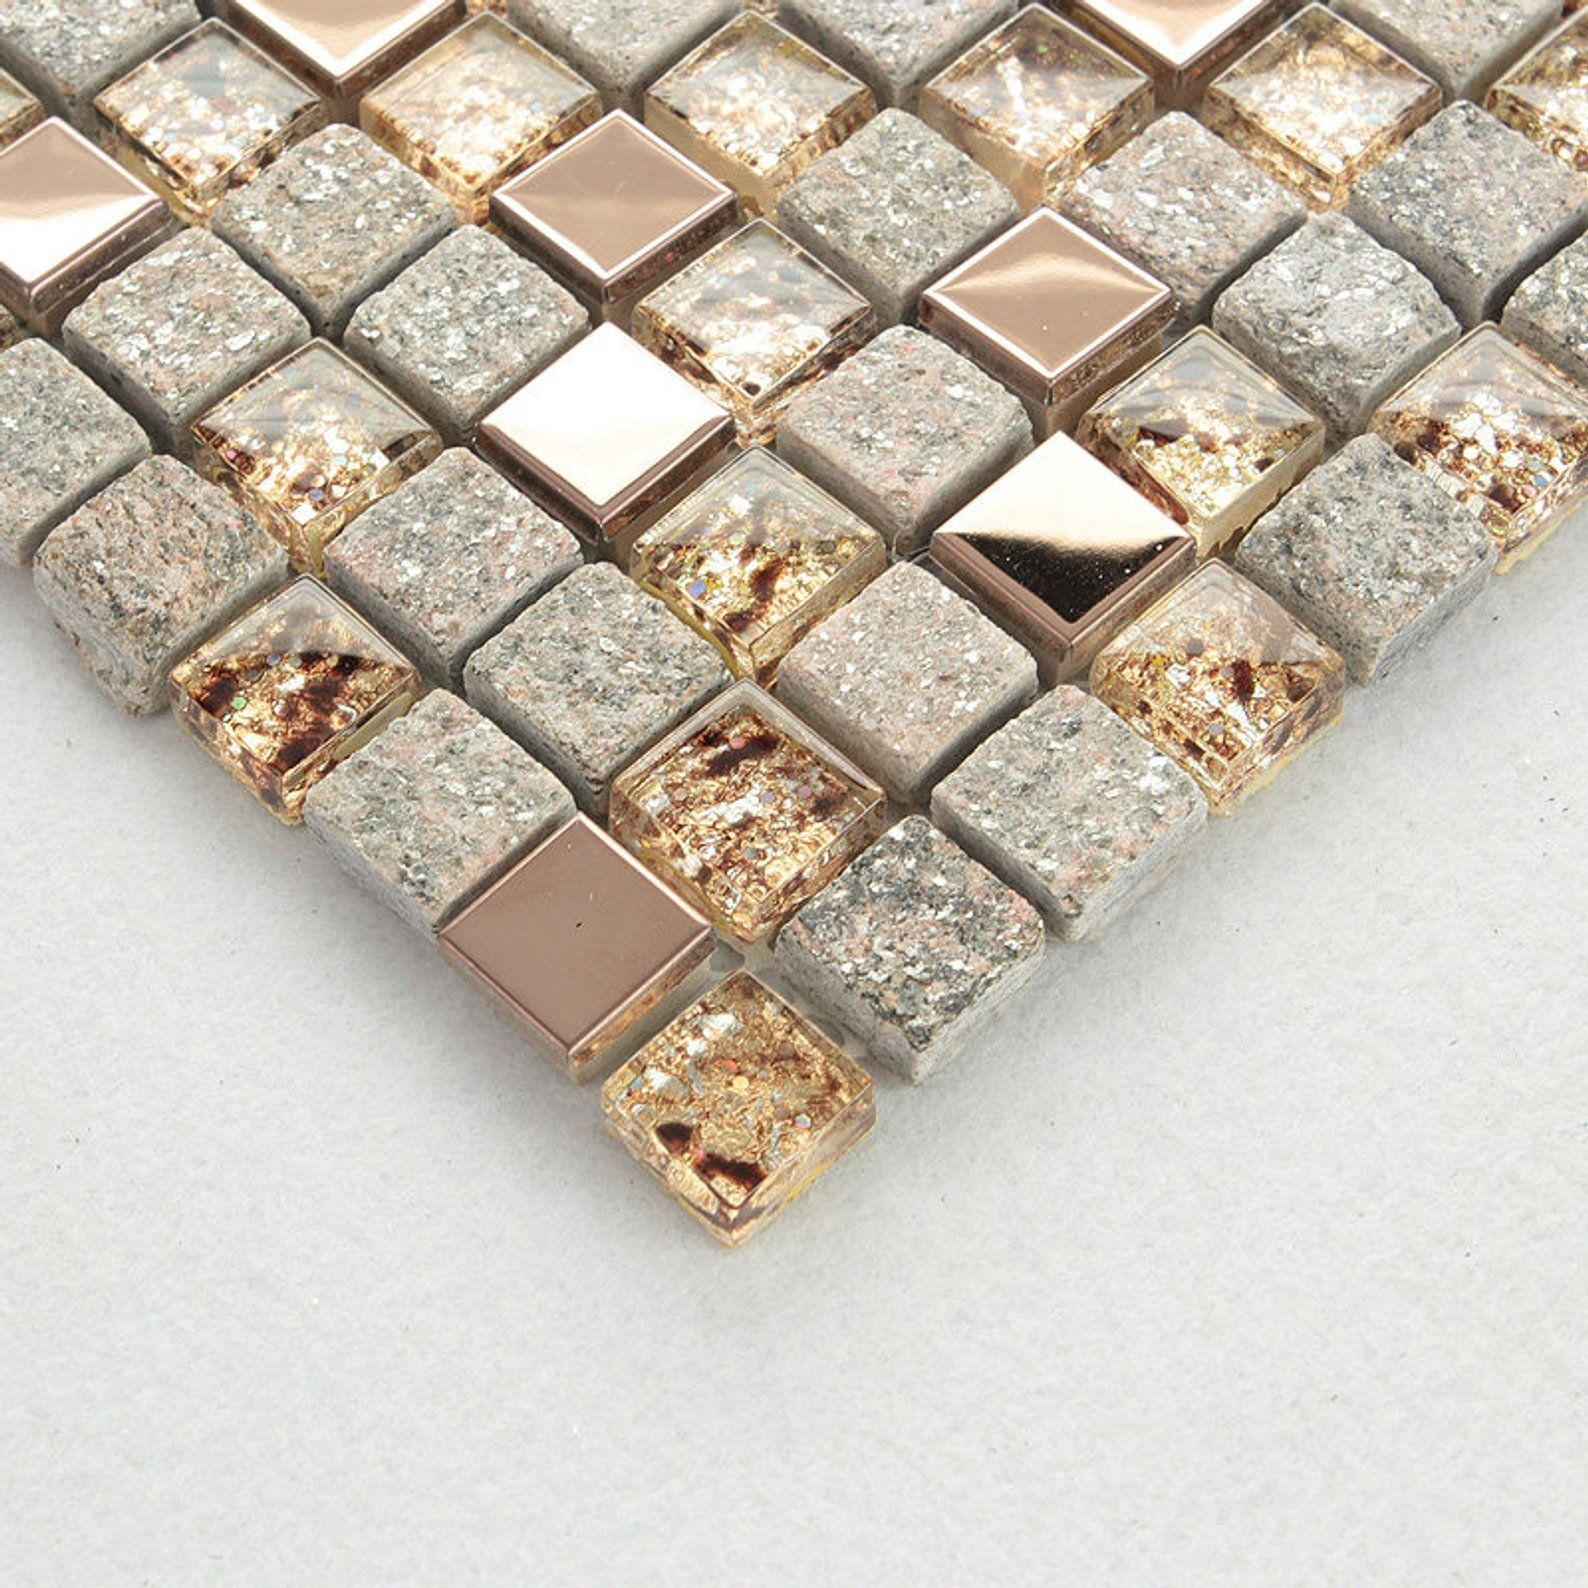 Astounding Gray And Rose Gold Ox022 11 7X11 7 Stone Mosaic Mixed Download Free Architecture Designs Scobabritishbridgeorg